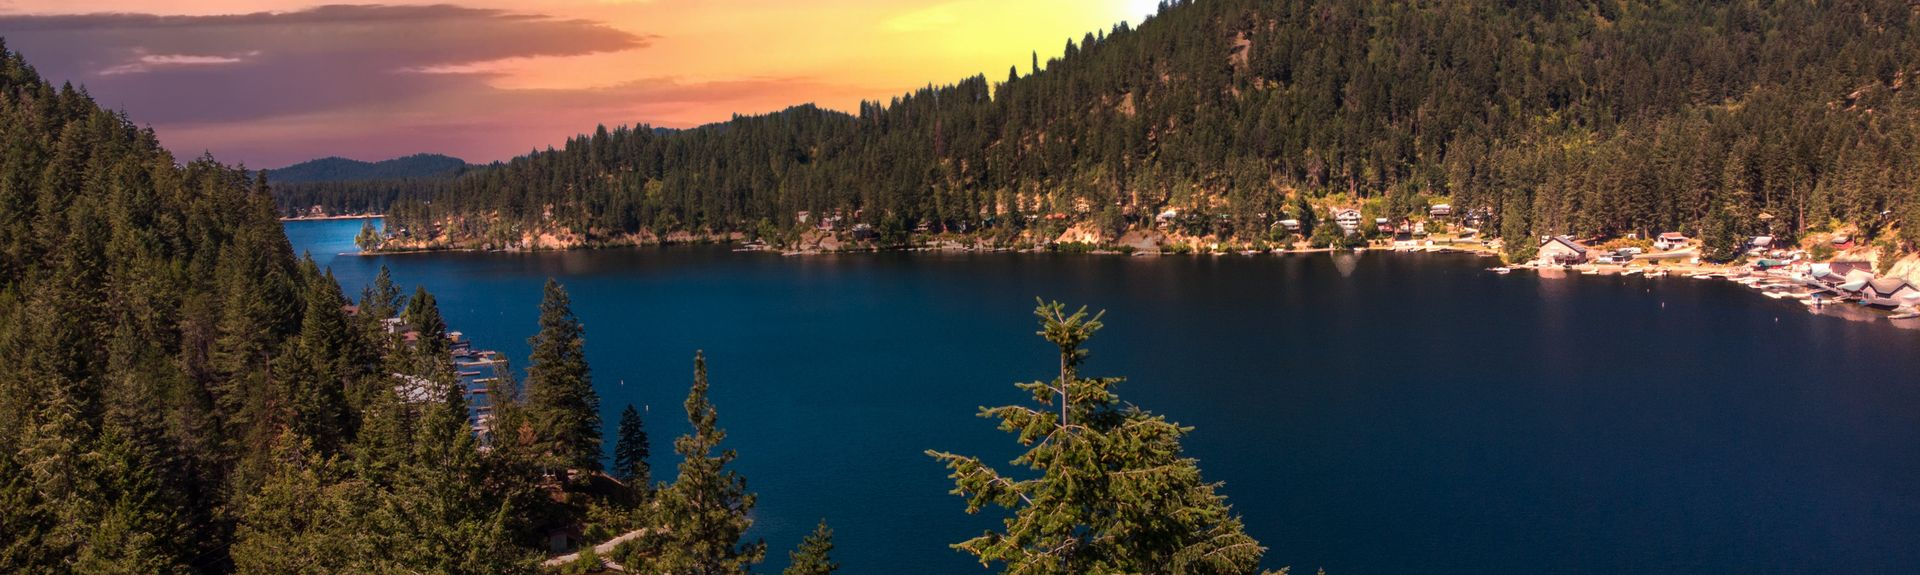 Deer Lake, Loon Lake, Washington, USA